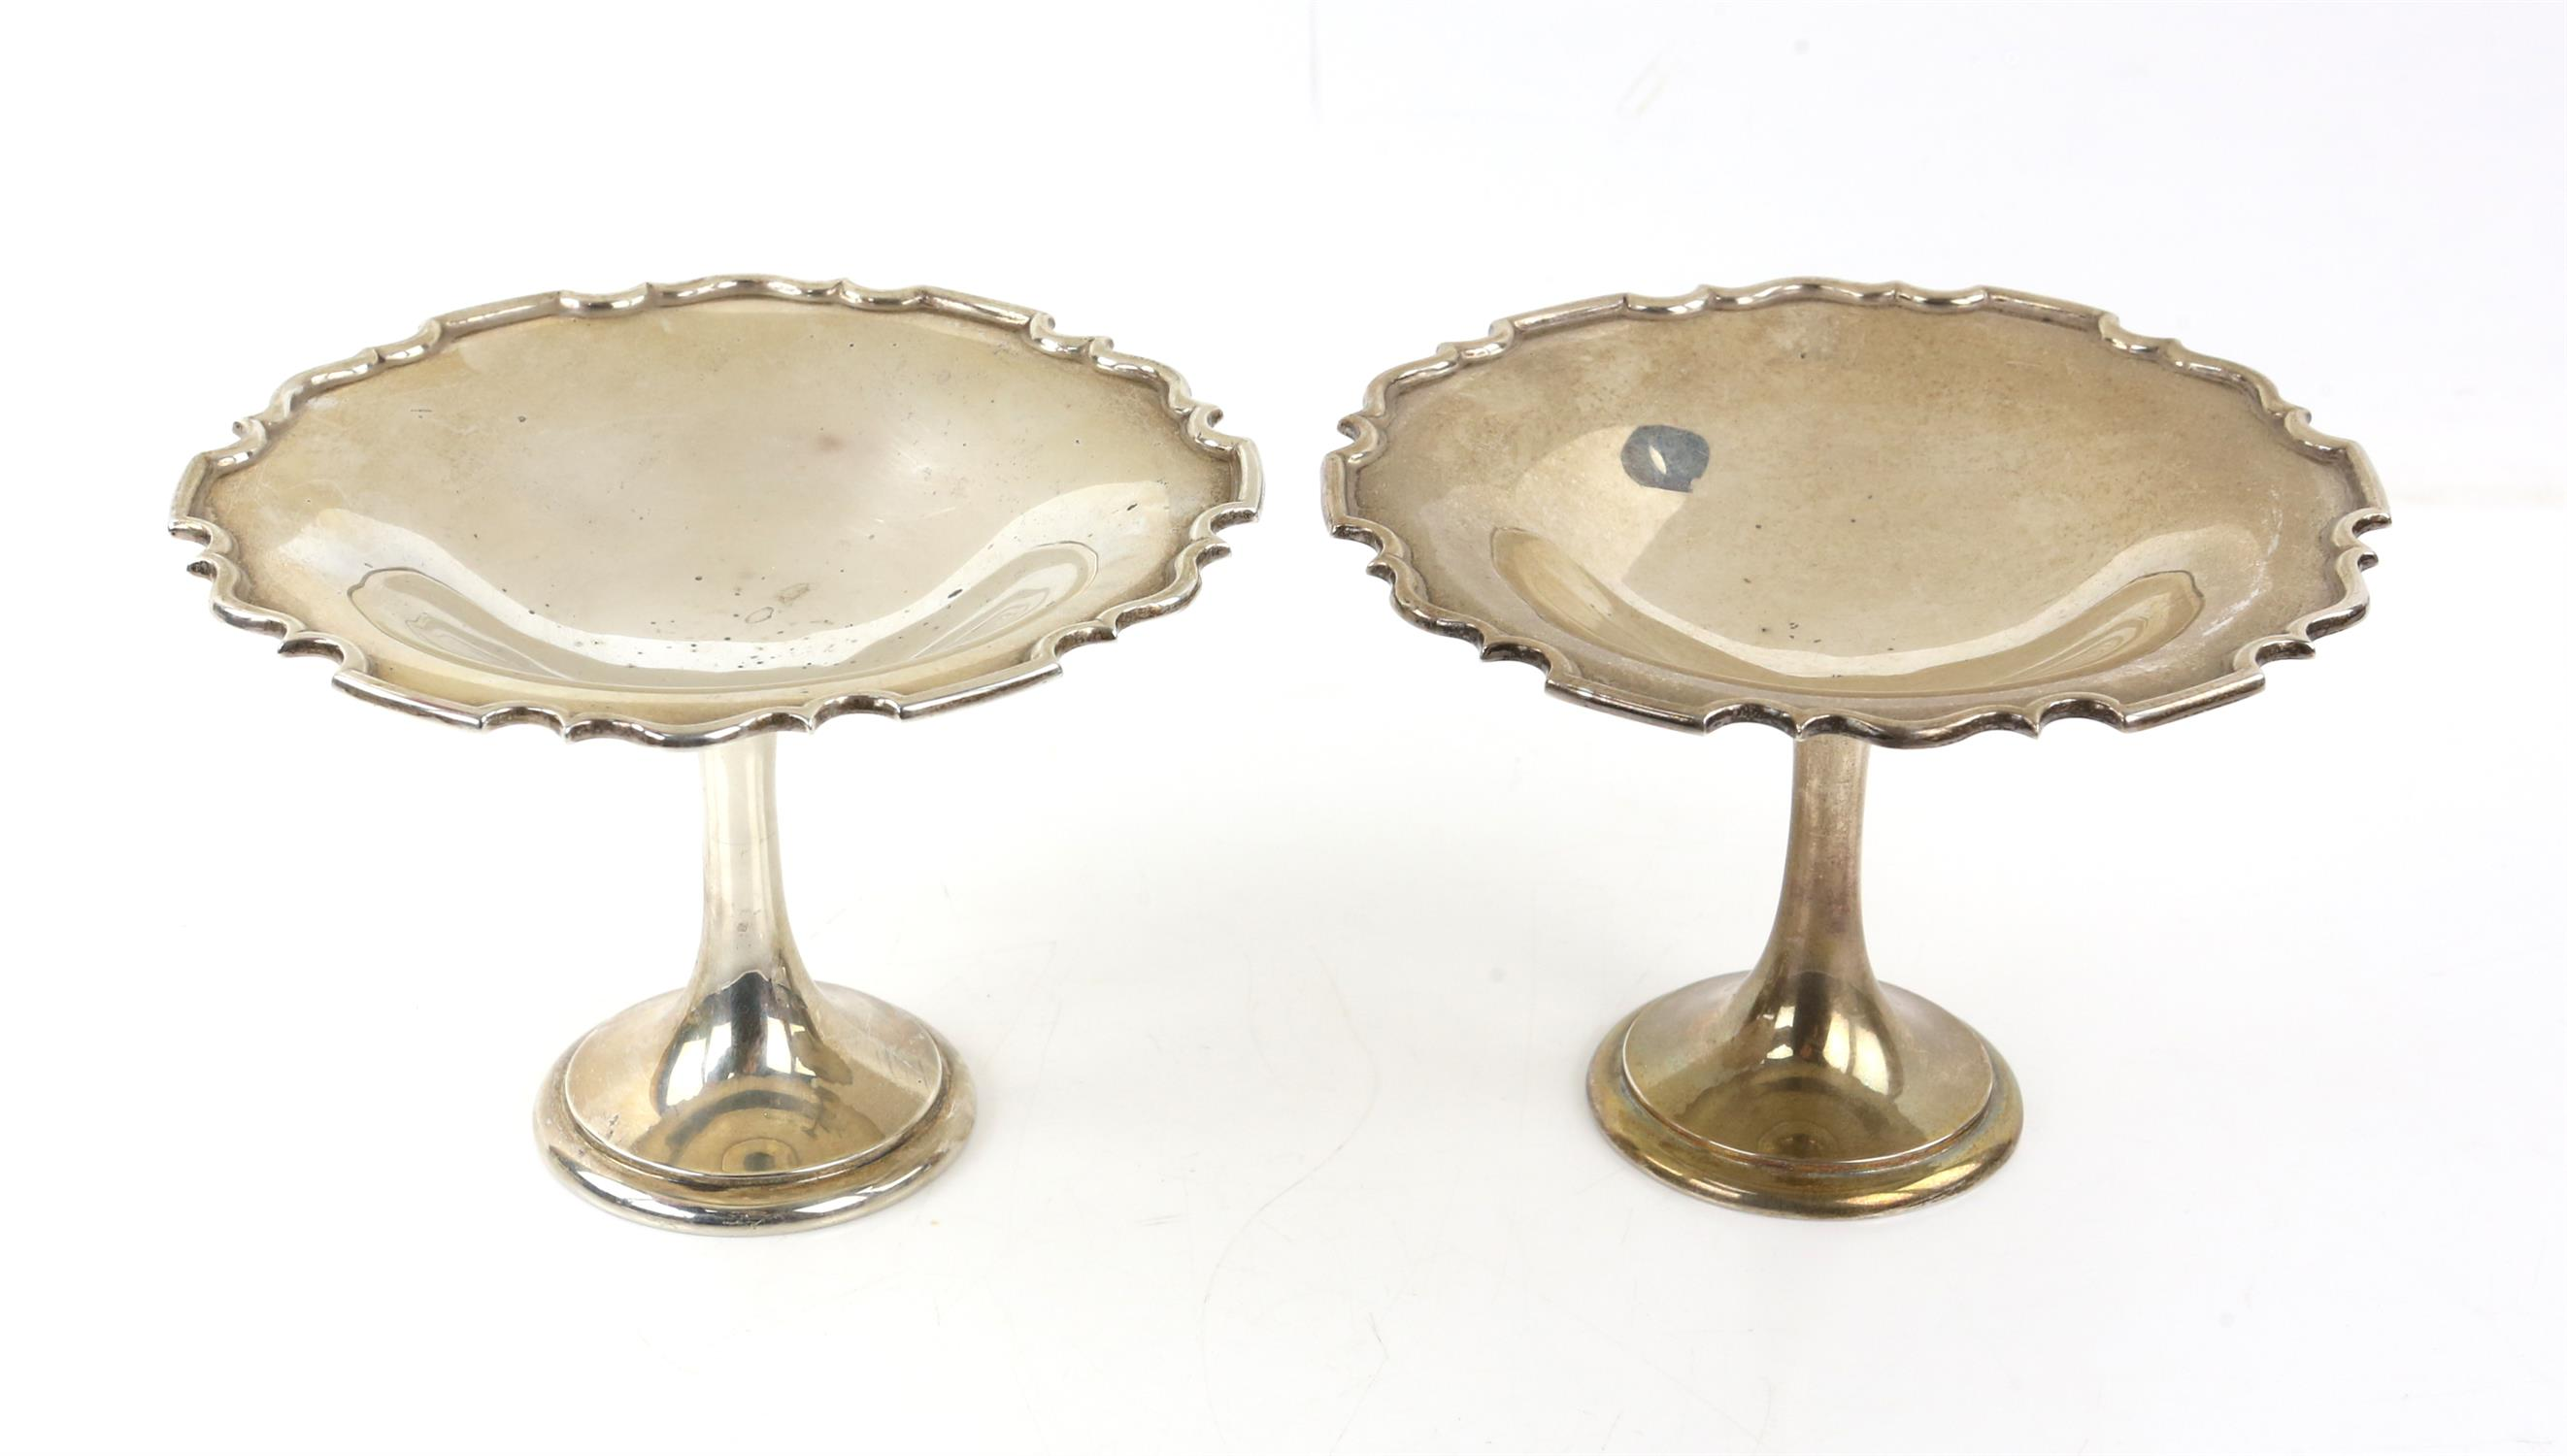 Pair of Mappin and Webb silver pedestal Tazzas with pie crust edges, London 1912